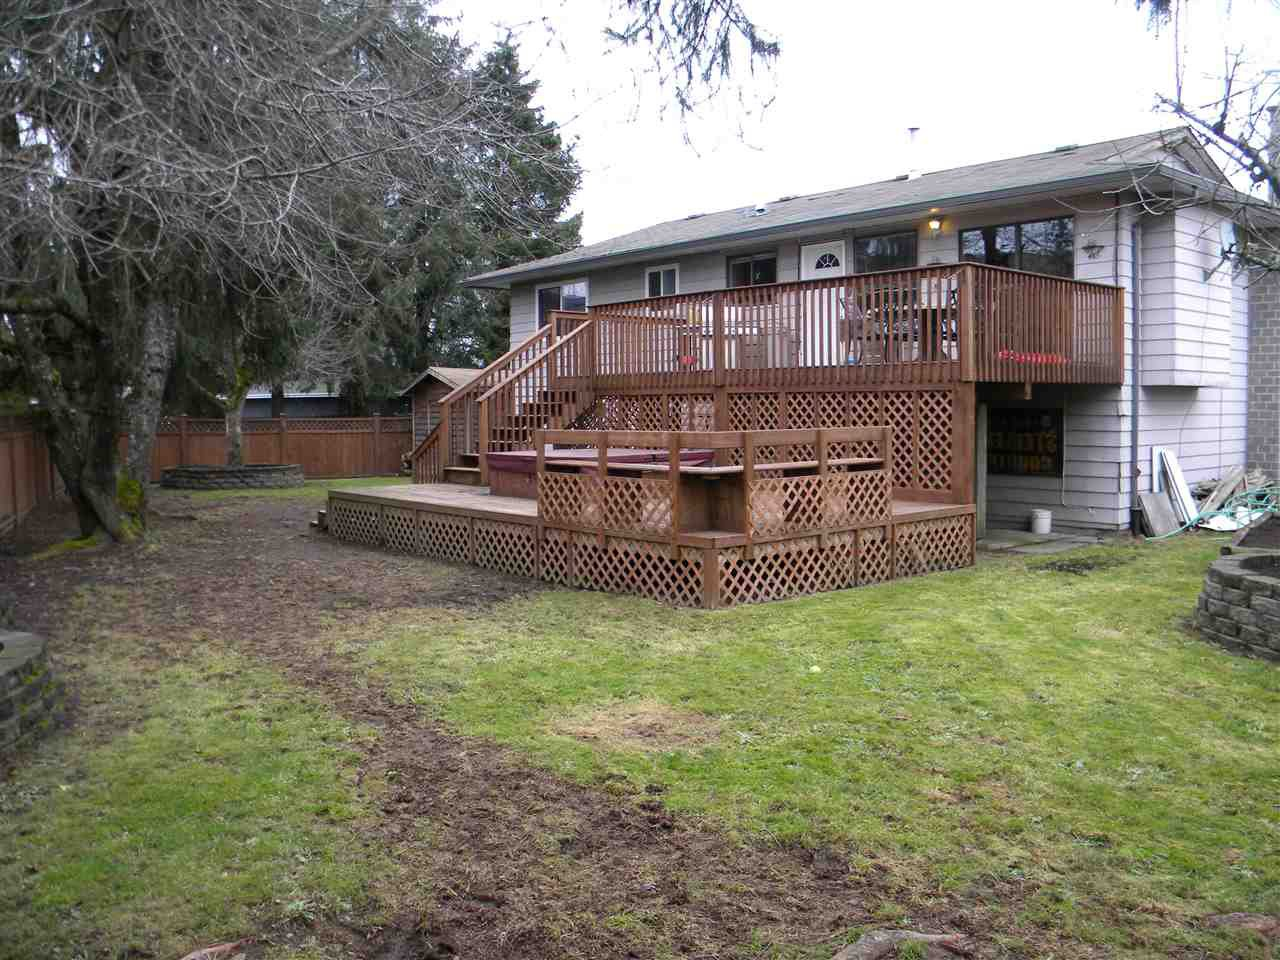 Photo 16: Photos: 15736 95A Avenue in Surrey: Fleetwood Tynehead House for sale : MLS®# R2132651